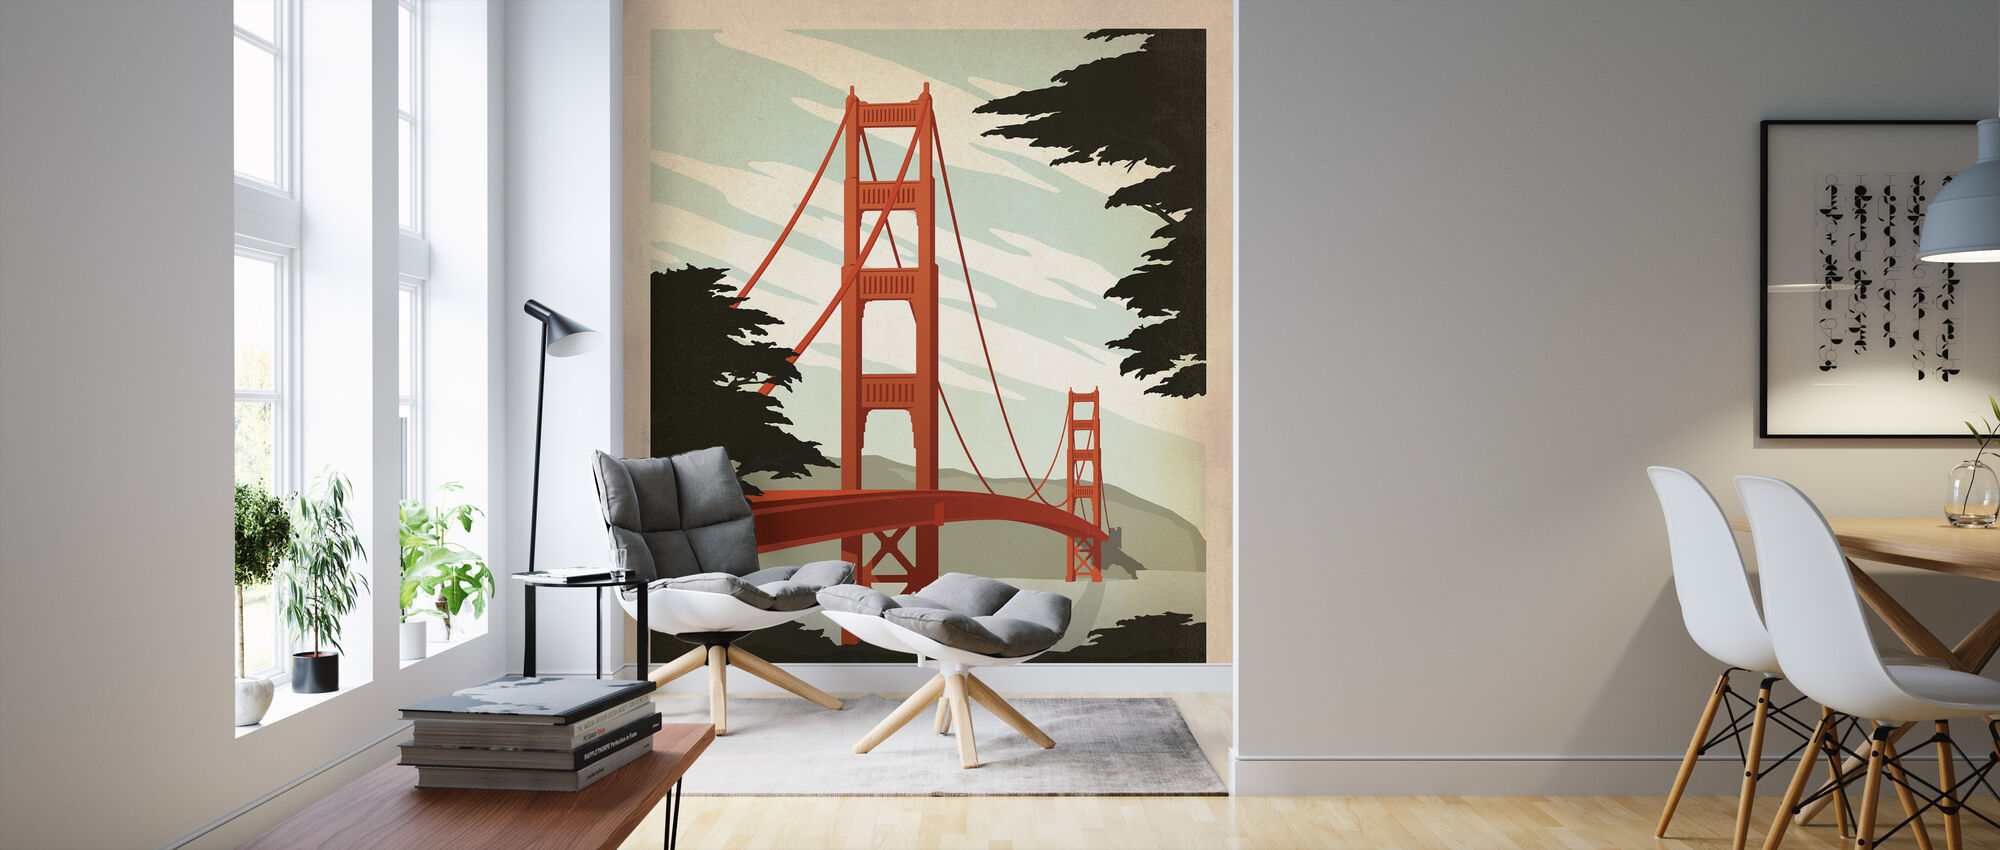 San Francisco - Wallpaper - Living Room